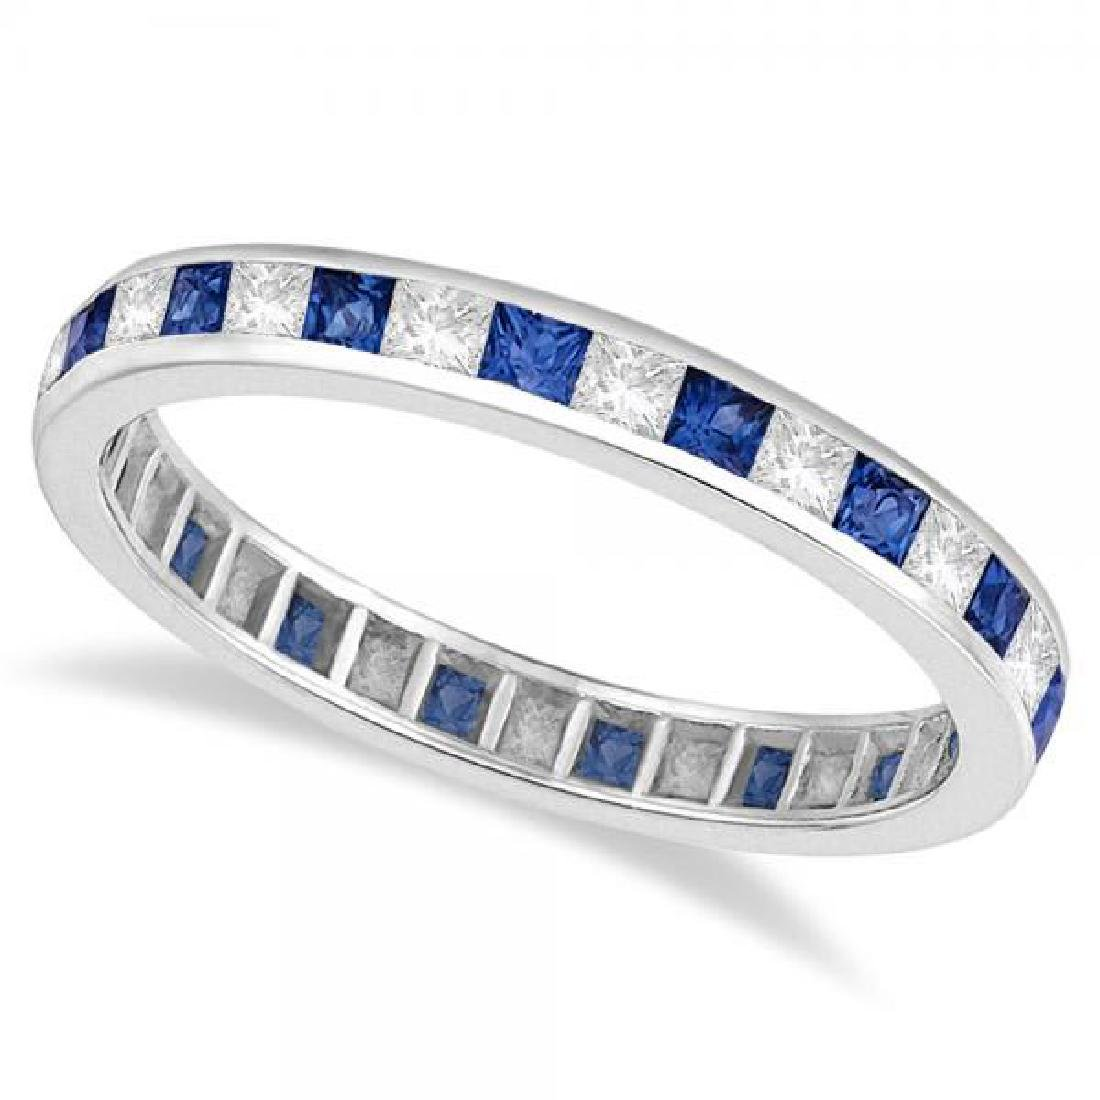 Princess-Cut Sapphire and Diamond Eternity Ring 14k Whi